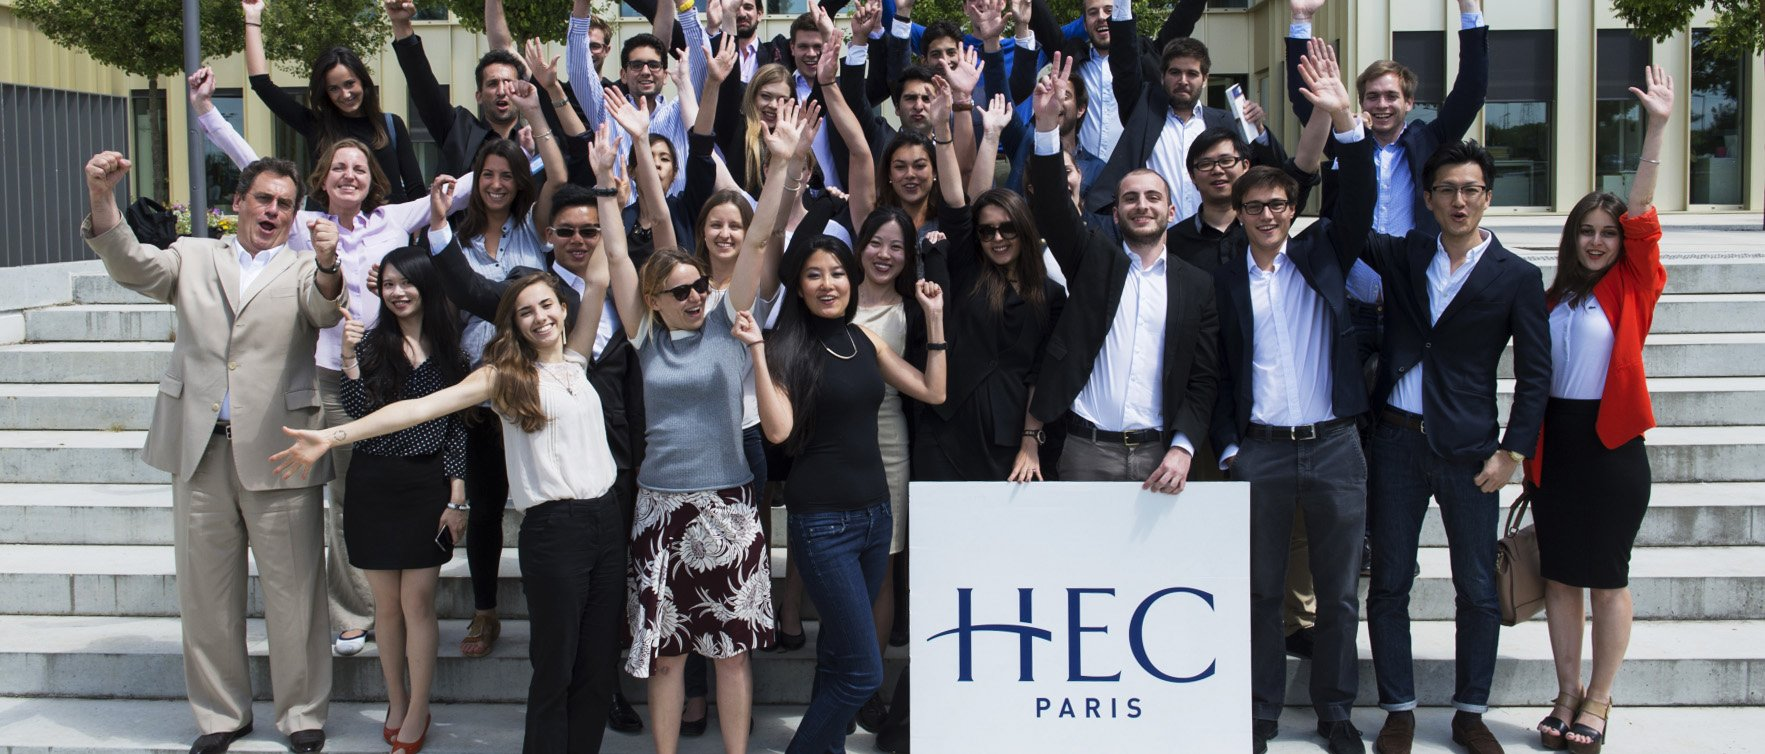 hec mba essays 2011 Specializing in education and research in management, hec paris offers a complete and unique range of educational programs for the leaders of tomorrow: masters programs, mba, phd, executive mba, trium global executive mba and executive education open-enrolment and custom programs.